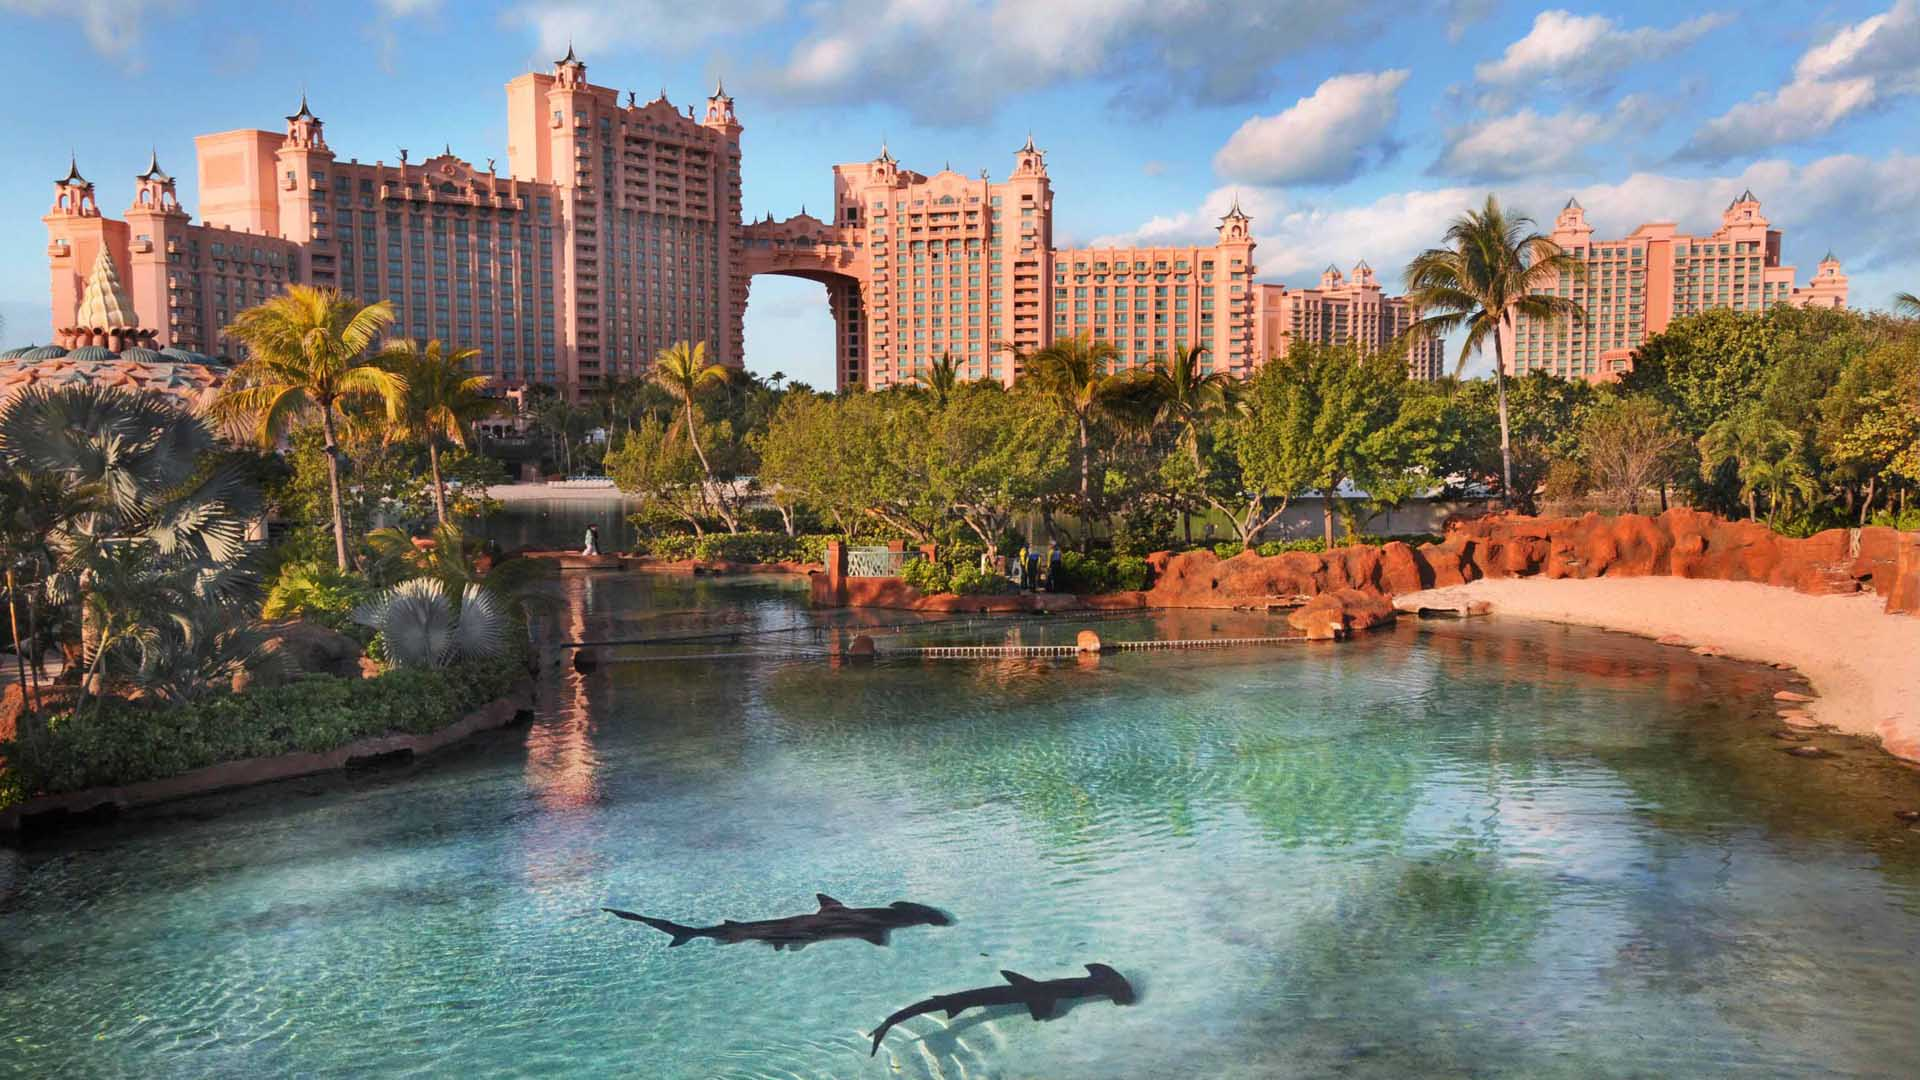 atlantisshark waterway 1795 TOP 10 of the most popular cities among fans of gambling